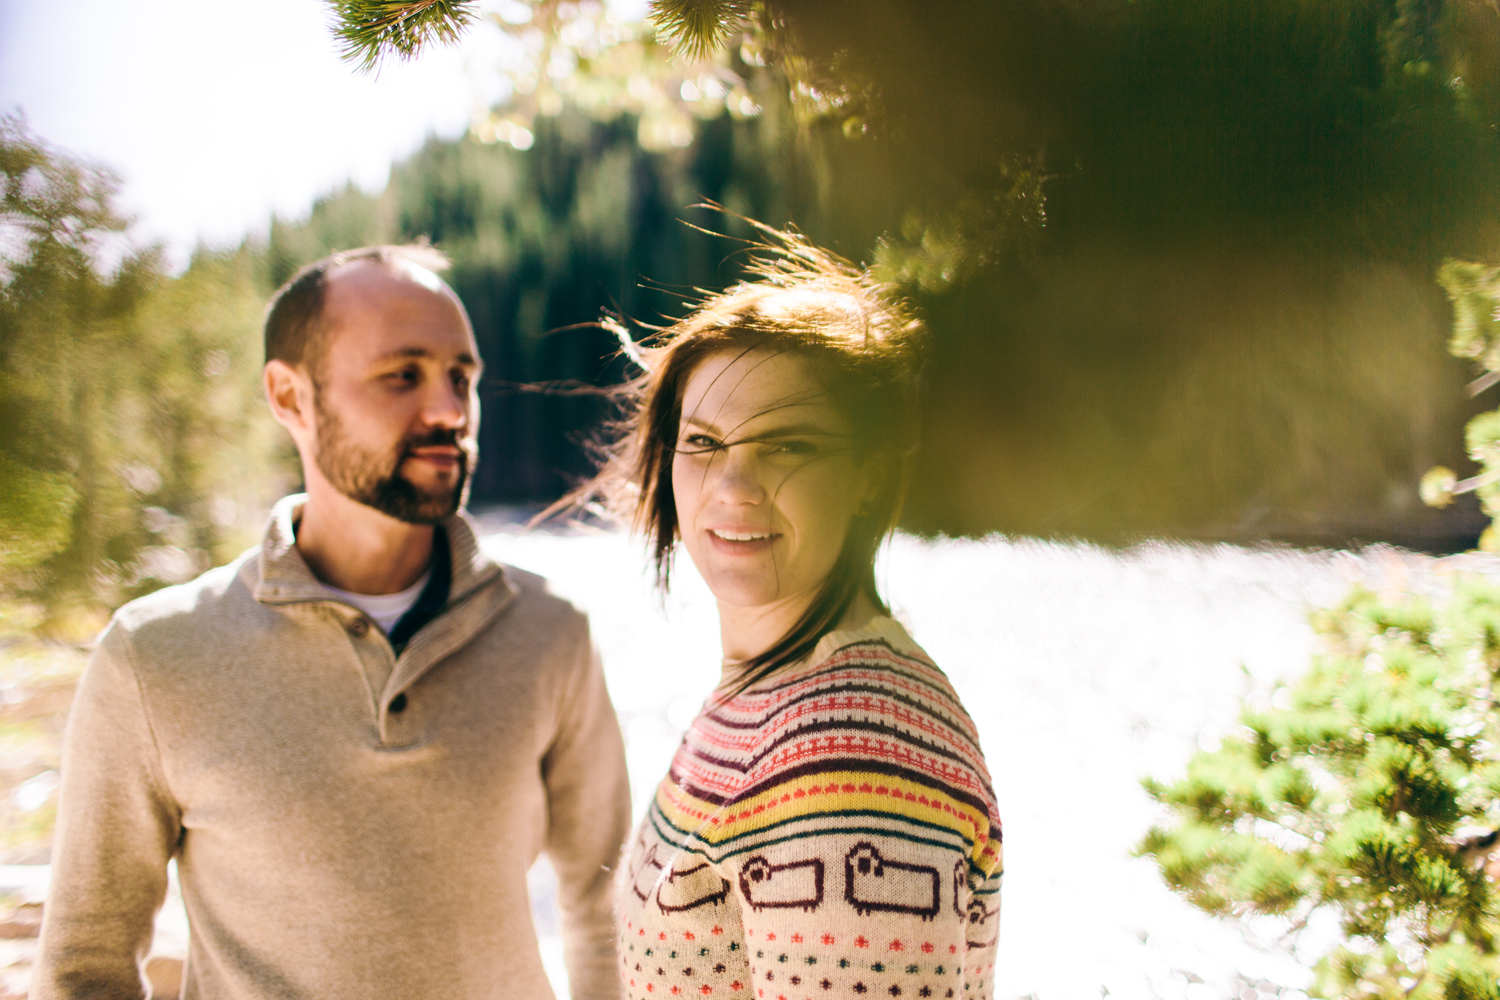 Jillian VanZytveld Photography Rocky Mountain National Park Engagement Portraits - 39.jpg